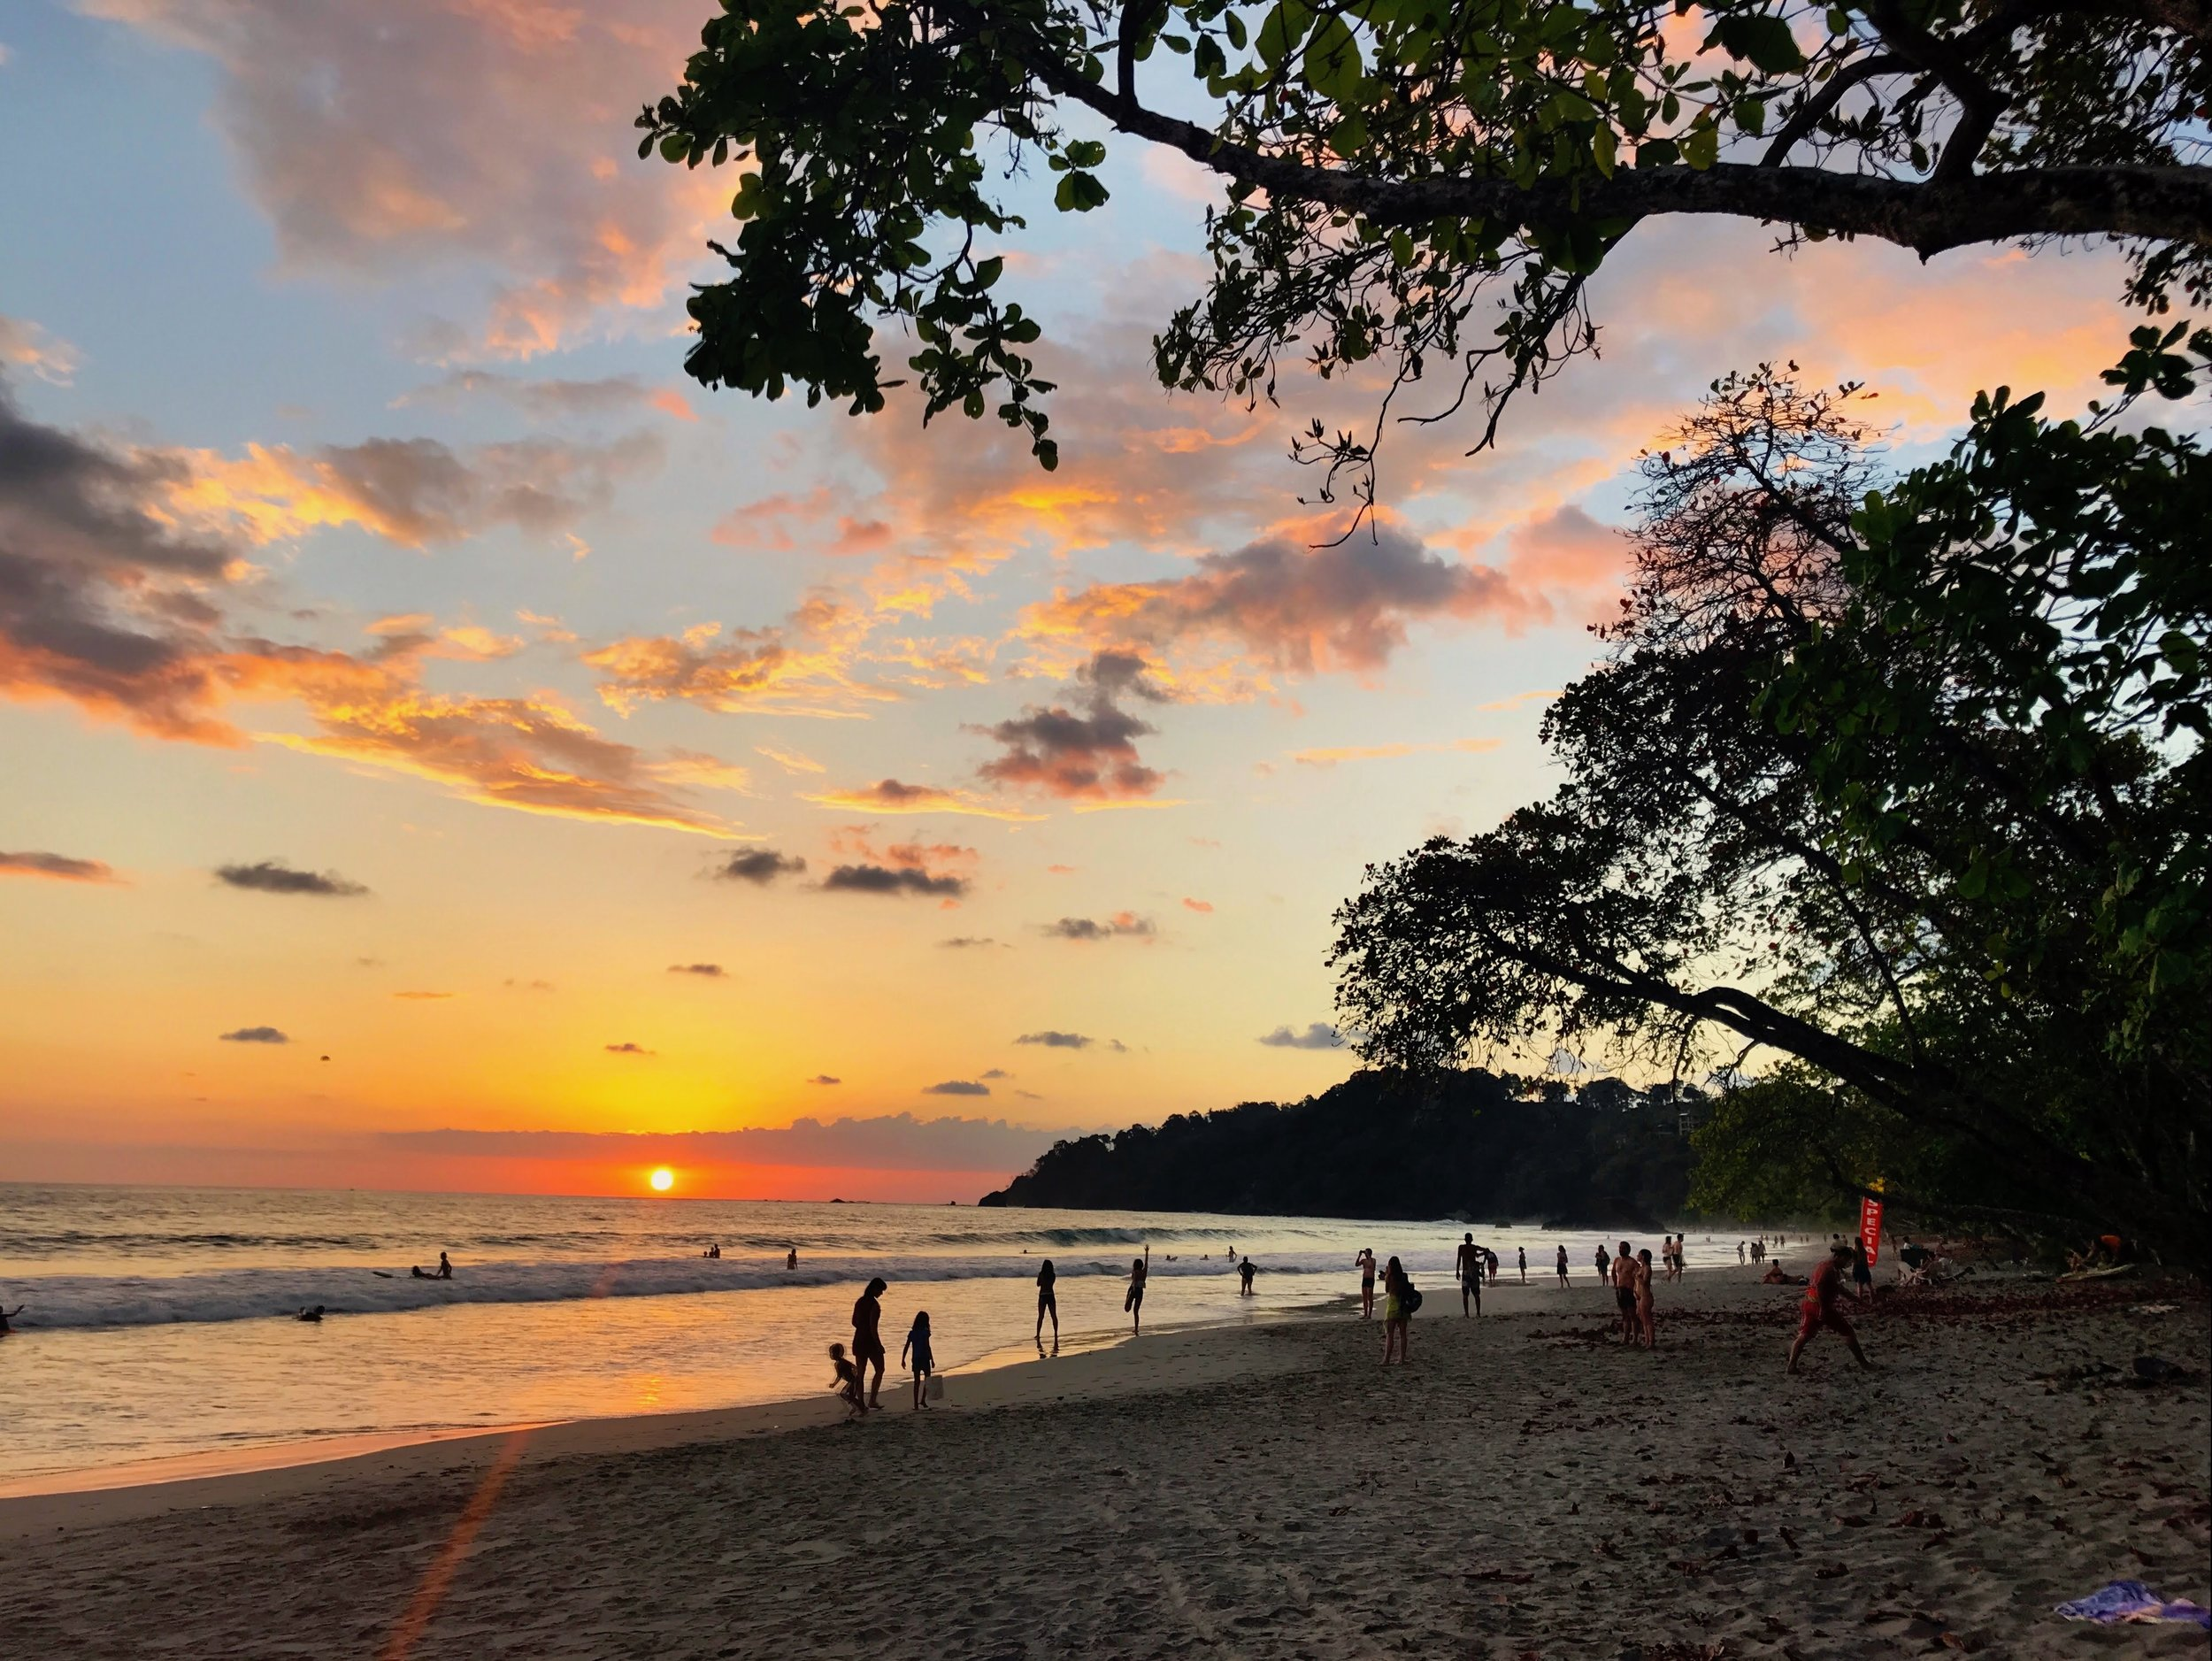 The Local S Guide To Manuel Antonio Costa Rica Sisters